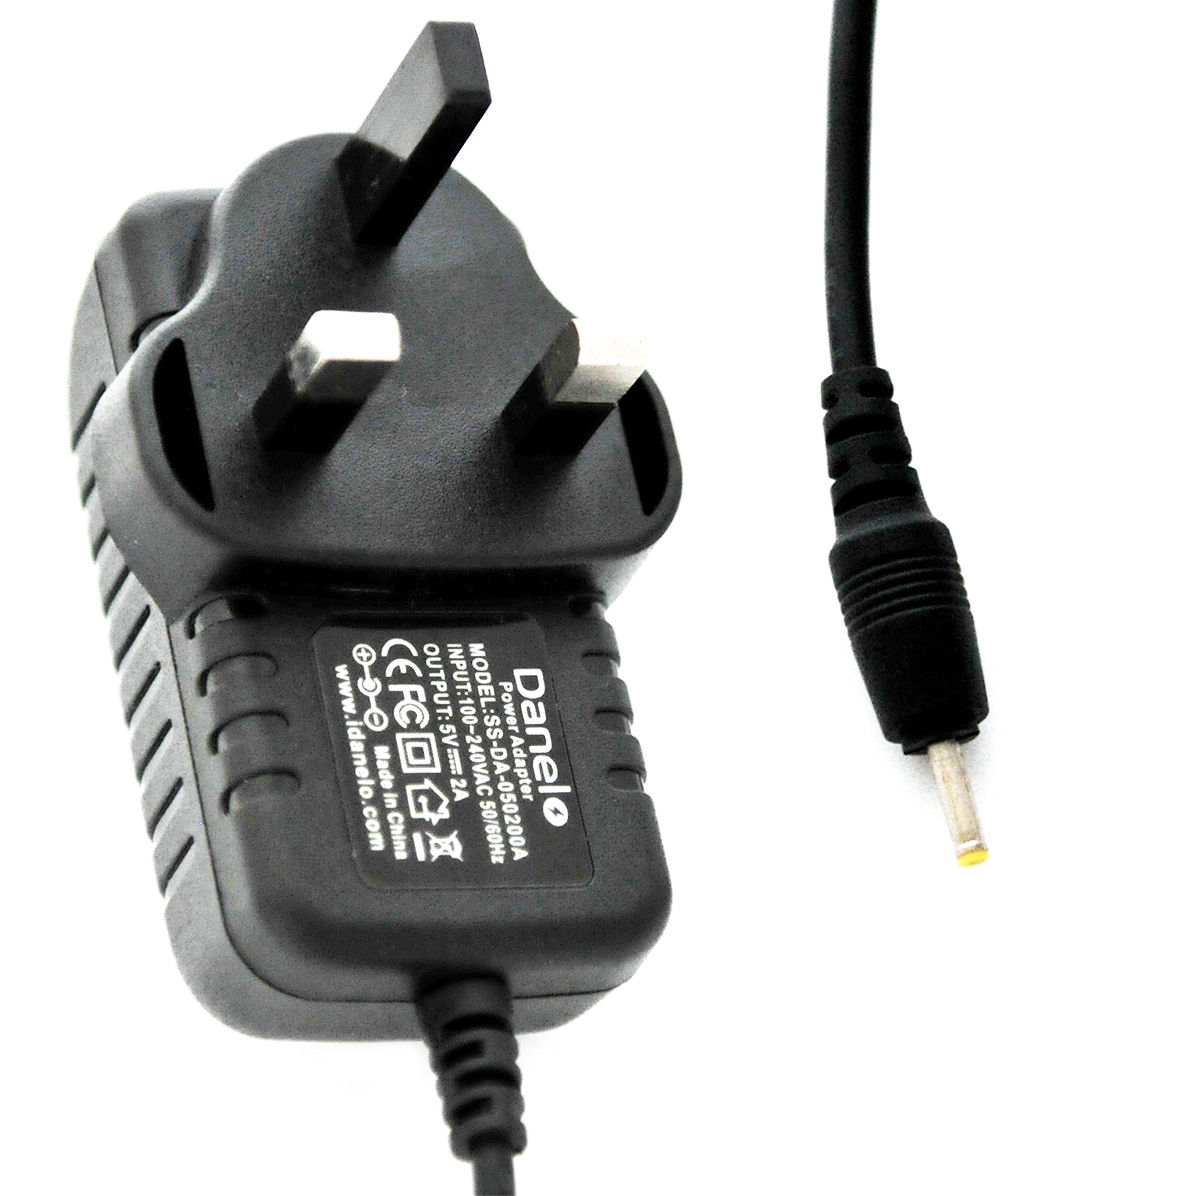 899 Gbp Yultek 5v 2a Ac Adaptor Power Supply 4 Prestigio Multipad Pmp3370b Tablet